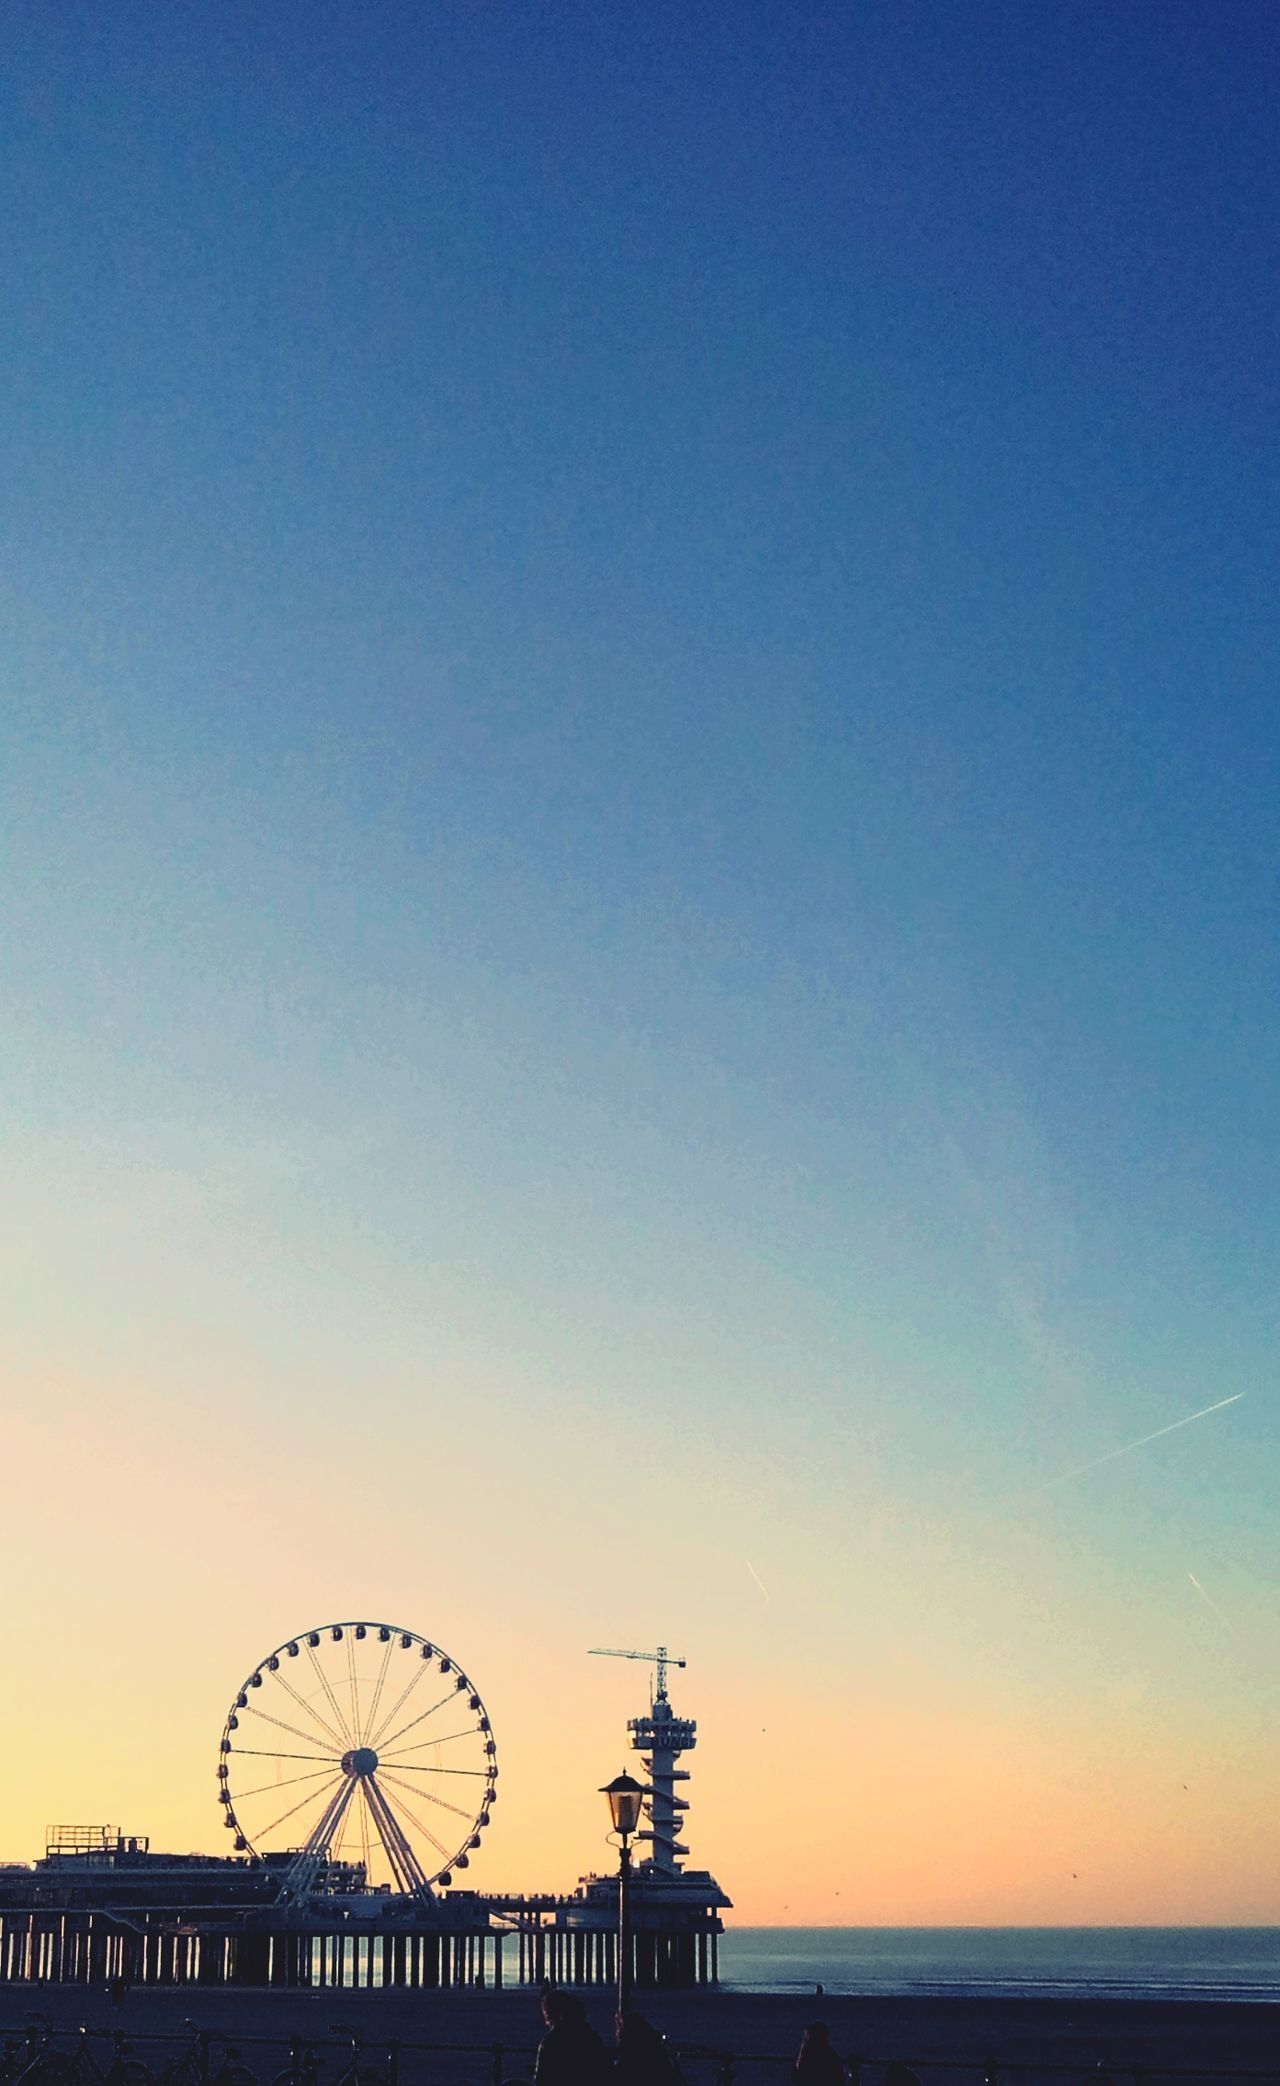 Beach Beauty Ferris Wheel Sea Amusement Park Rollercoaster Outdoors Sky No People Nature Scenics Day Eye4photography  Clear Sky Travel Destinations EyeEm Best Shots - Landscape Eyeemphotography EyeEmNewHere Tranquility Nature Photography Dutch Sunset